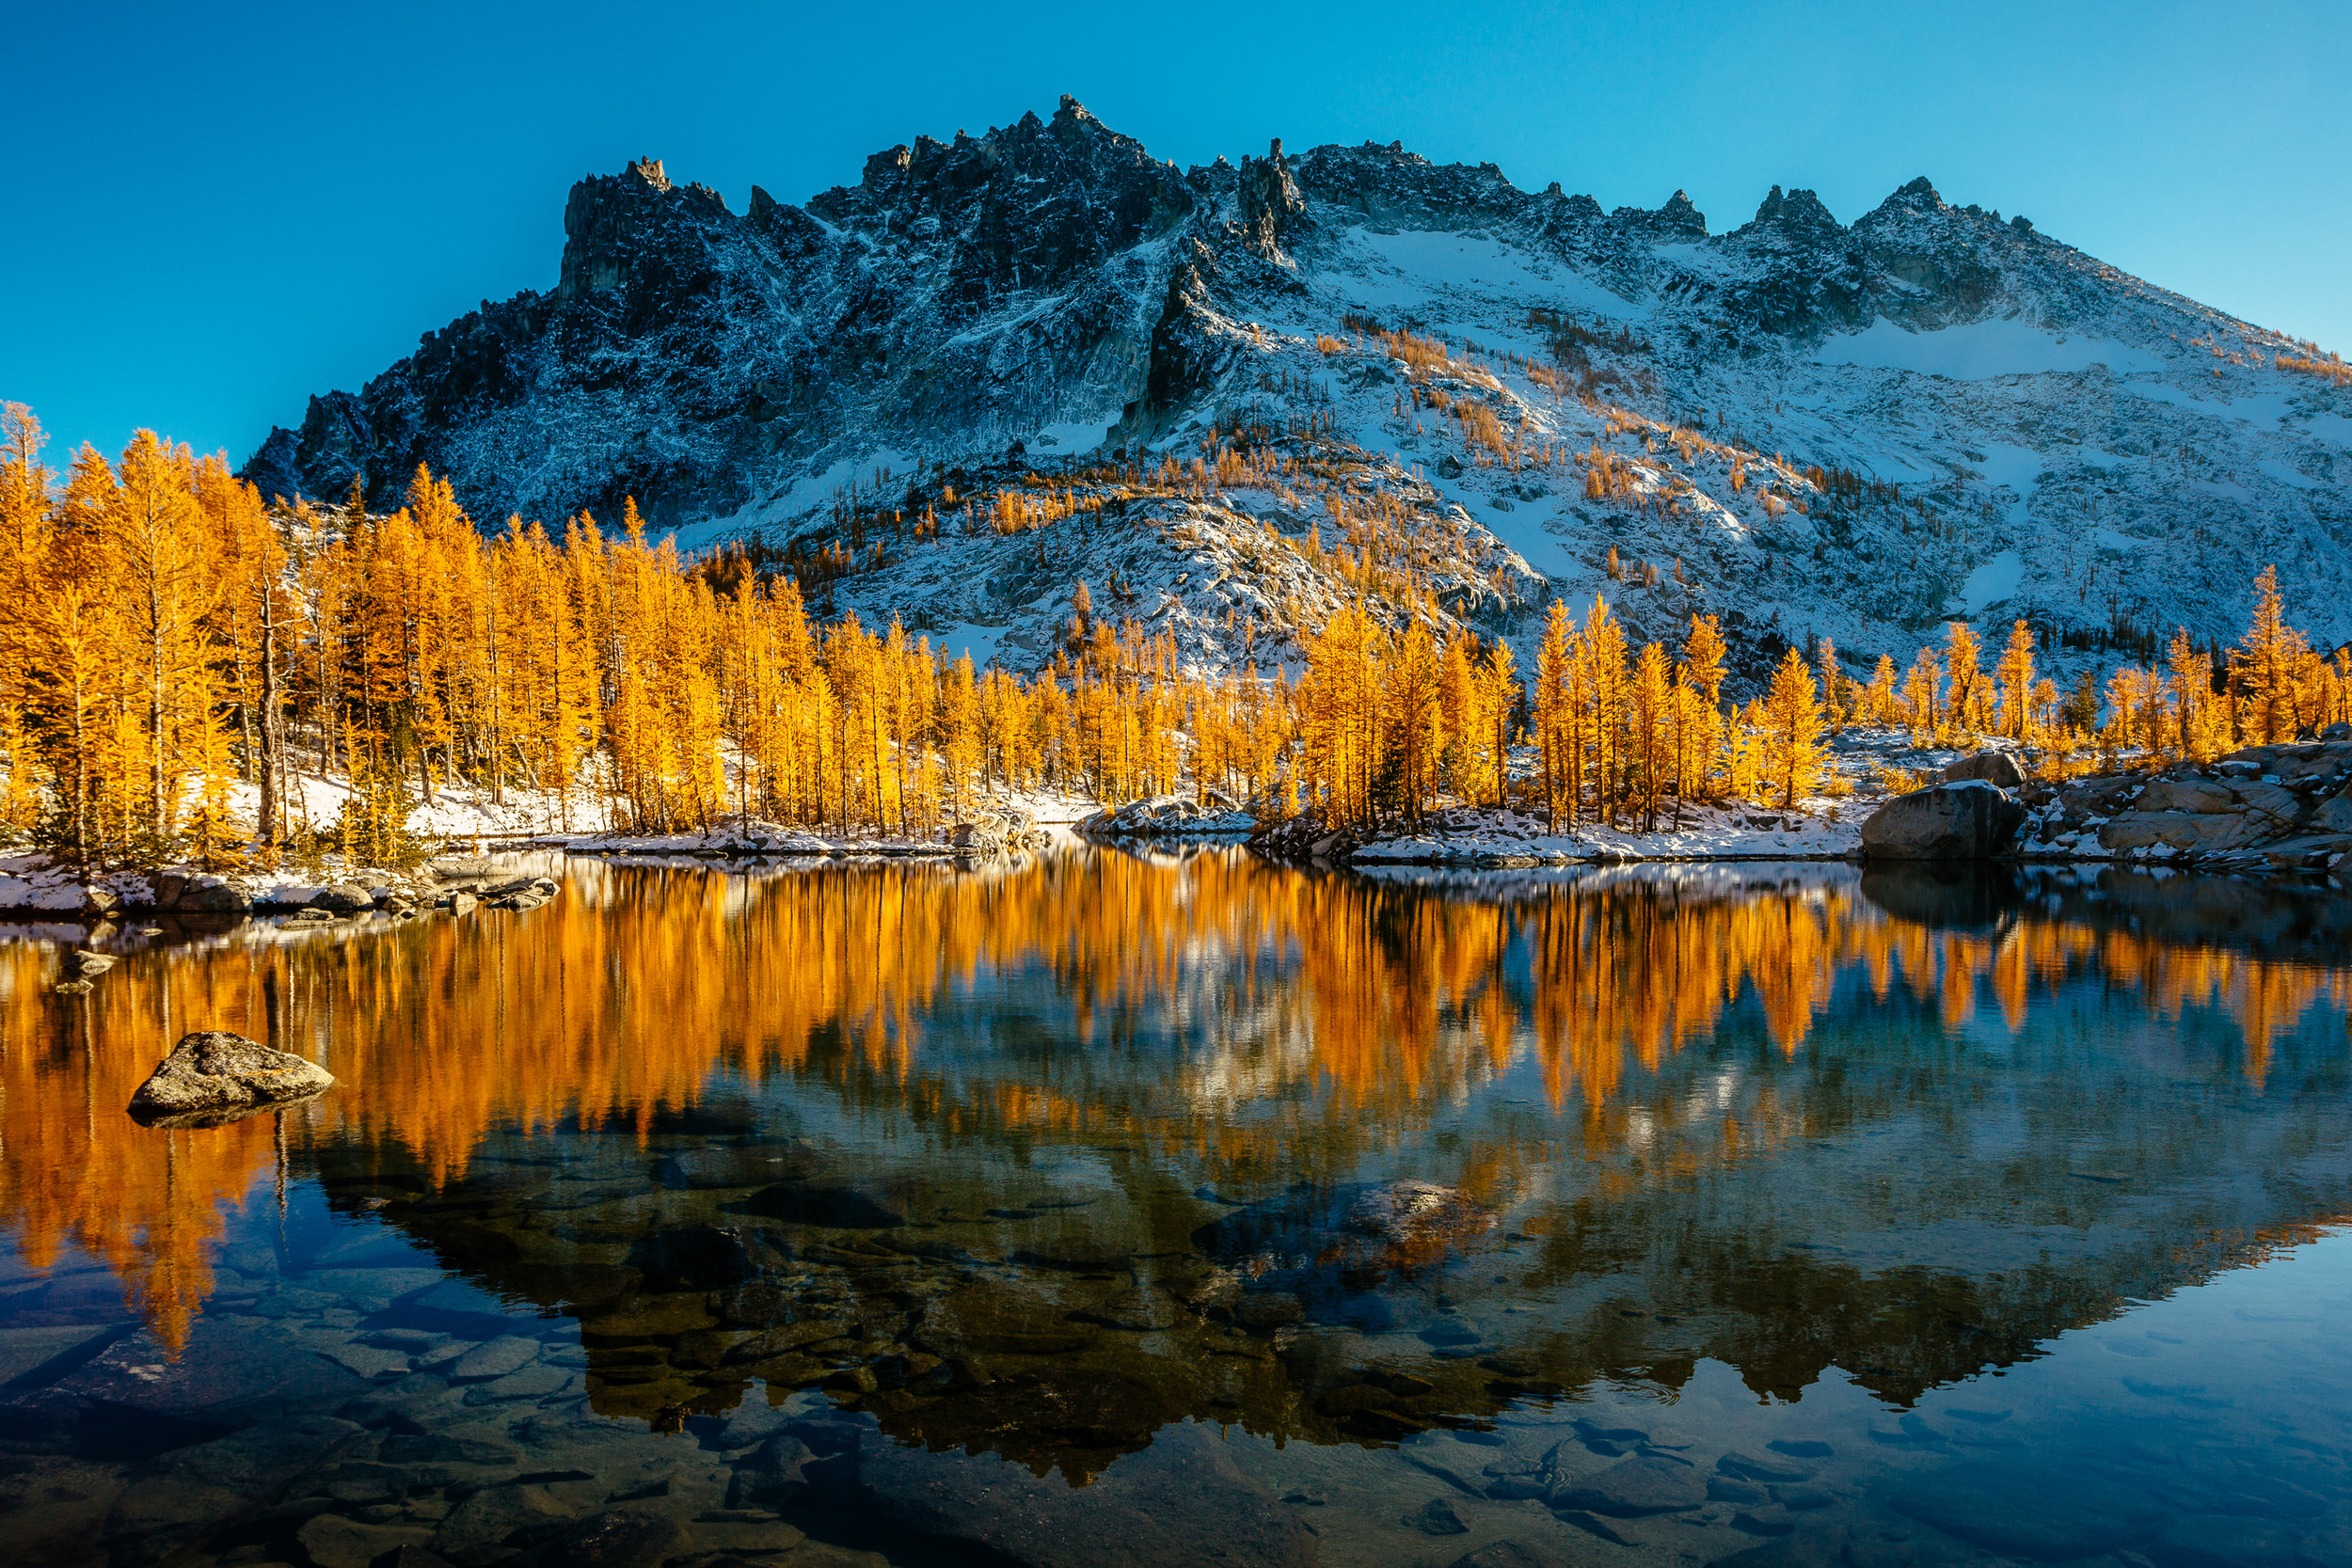 December: Reflection on Golden Larches and Enchanted Places